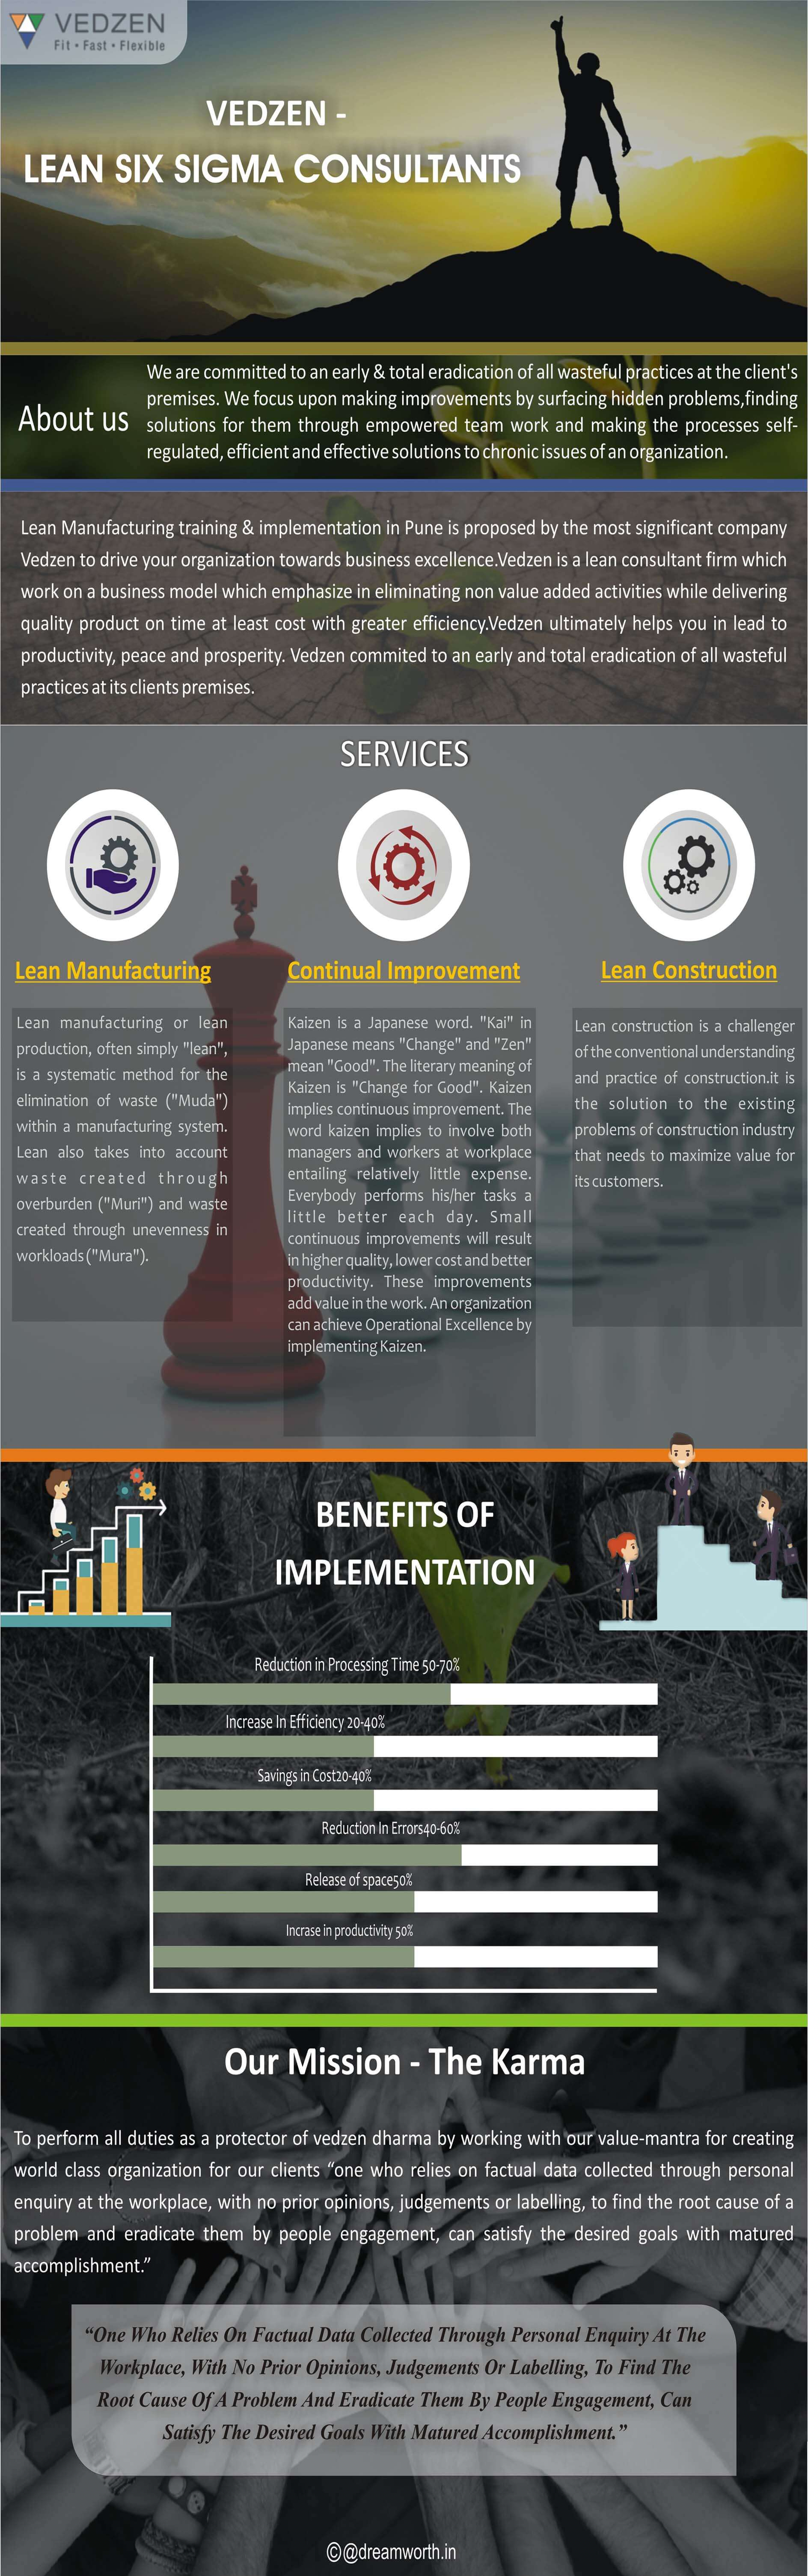 infographics on six sigma designed for the vedzen